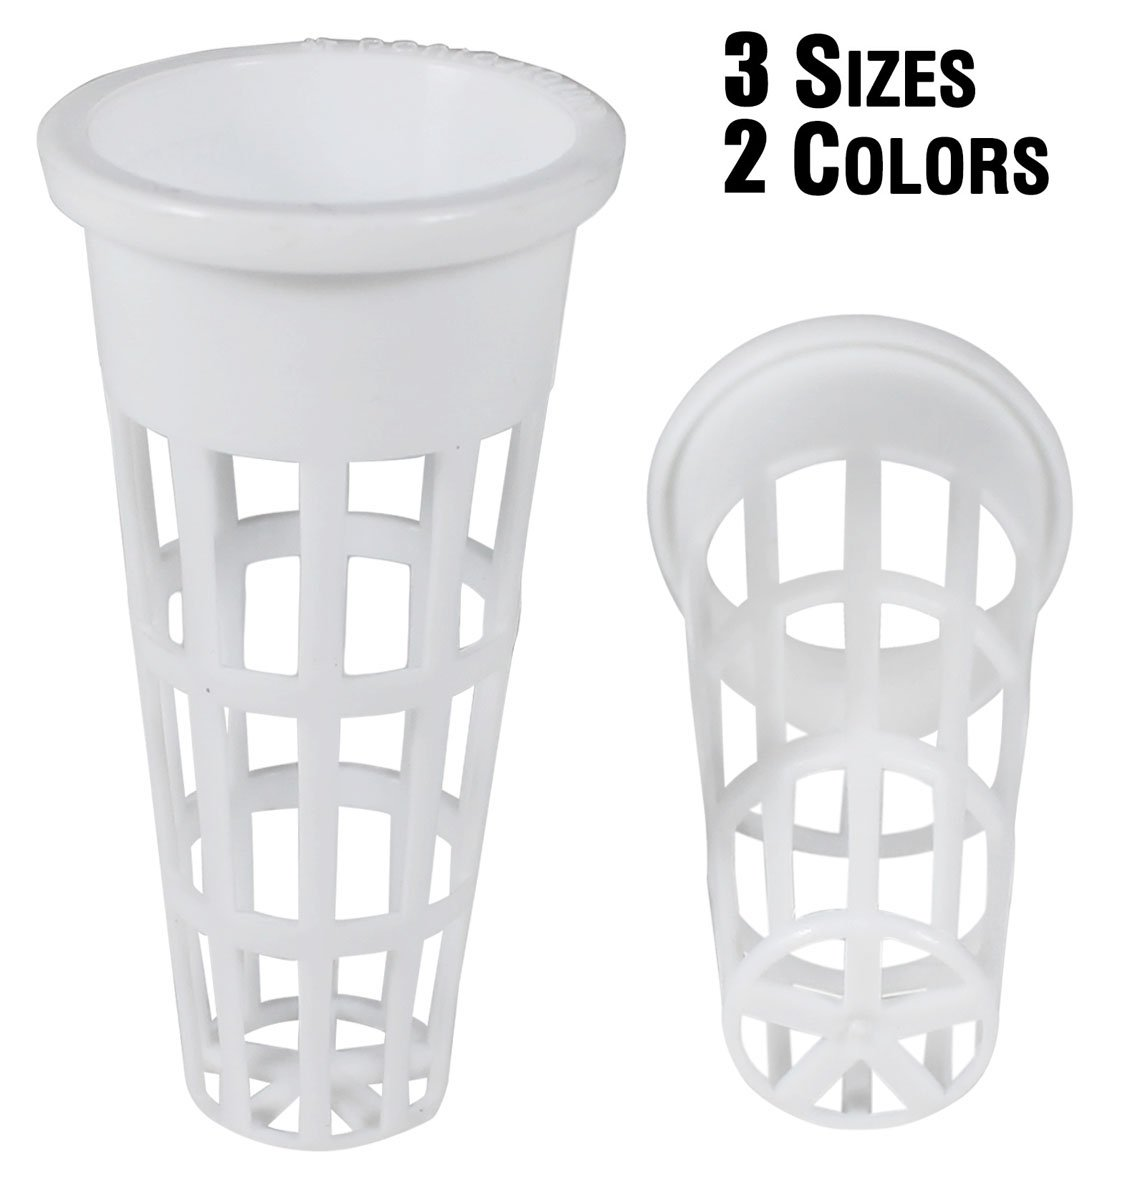 NP1DW: 7/8 Inch White Slotted Mesh Net Pot for Hydroponics/Aquaponics/Orchids - 2700 Carton